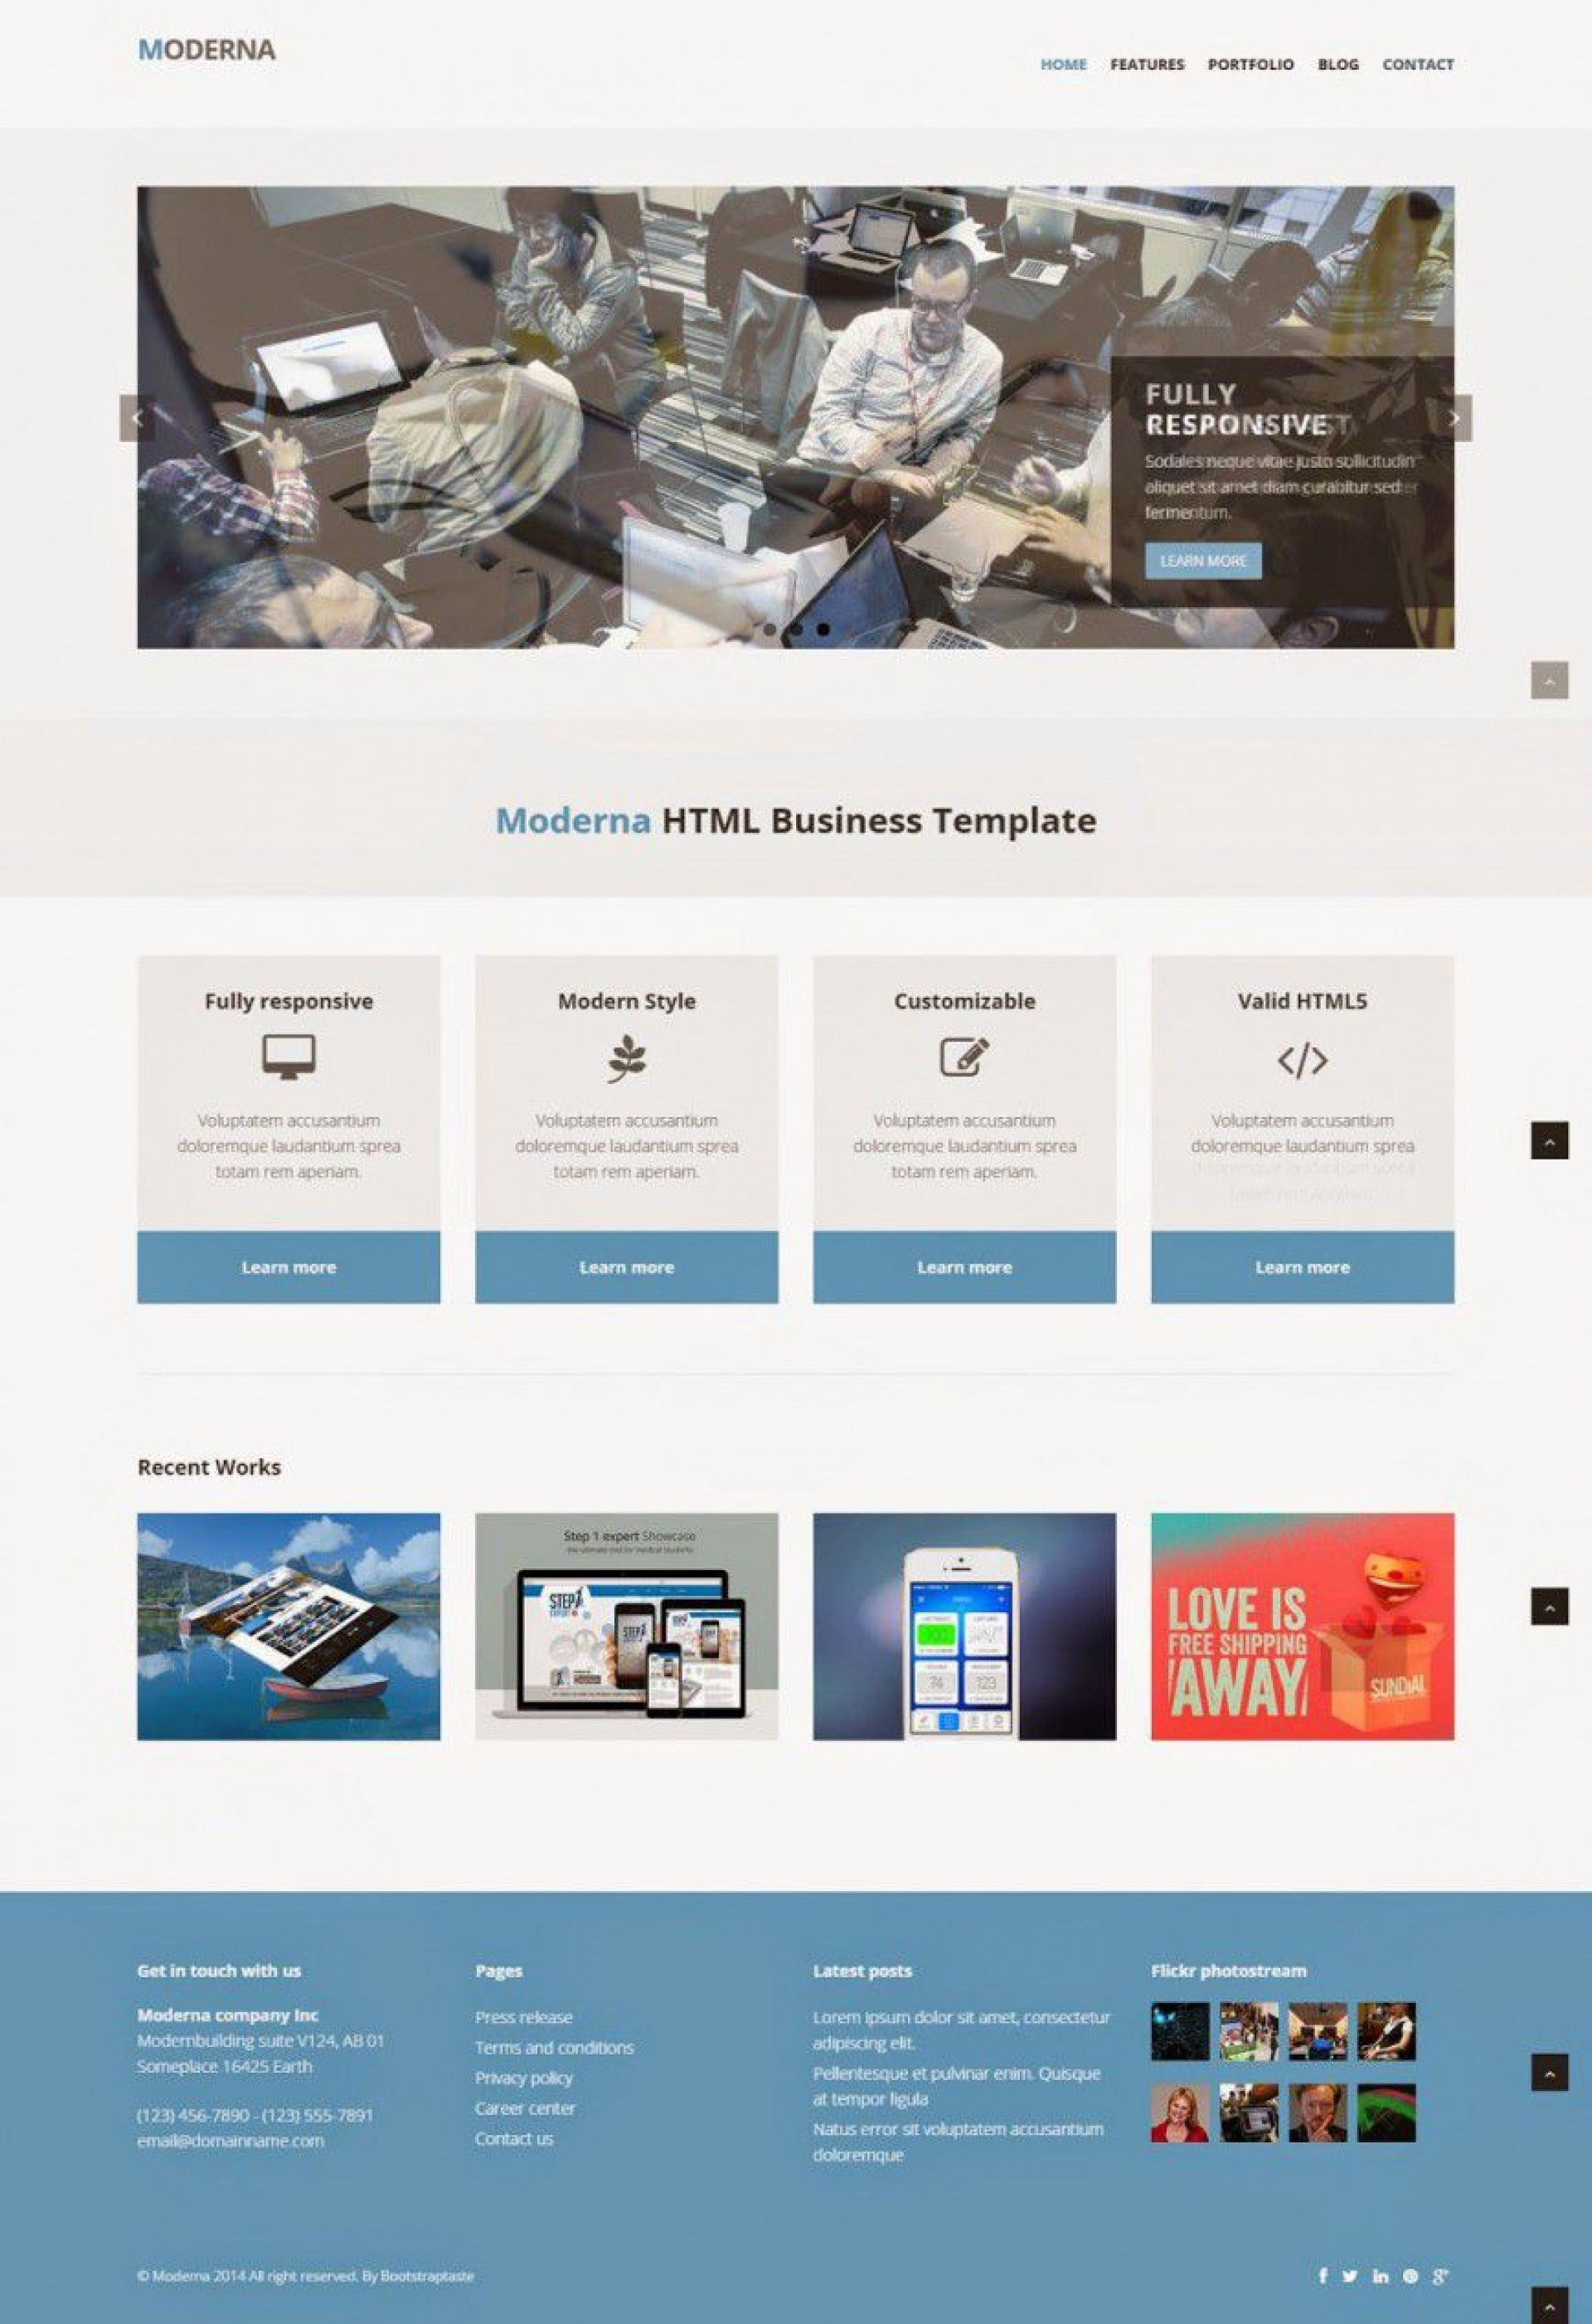 007 Surprising Free Busines Website Template Download Html And Cs Jquery Image  Responsive For It Company1920